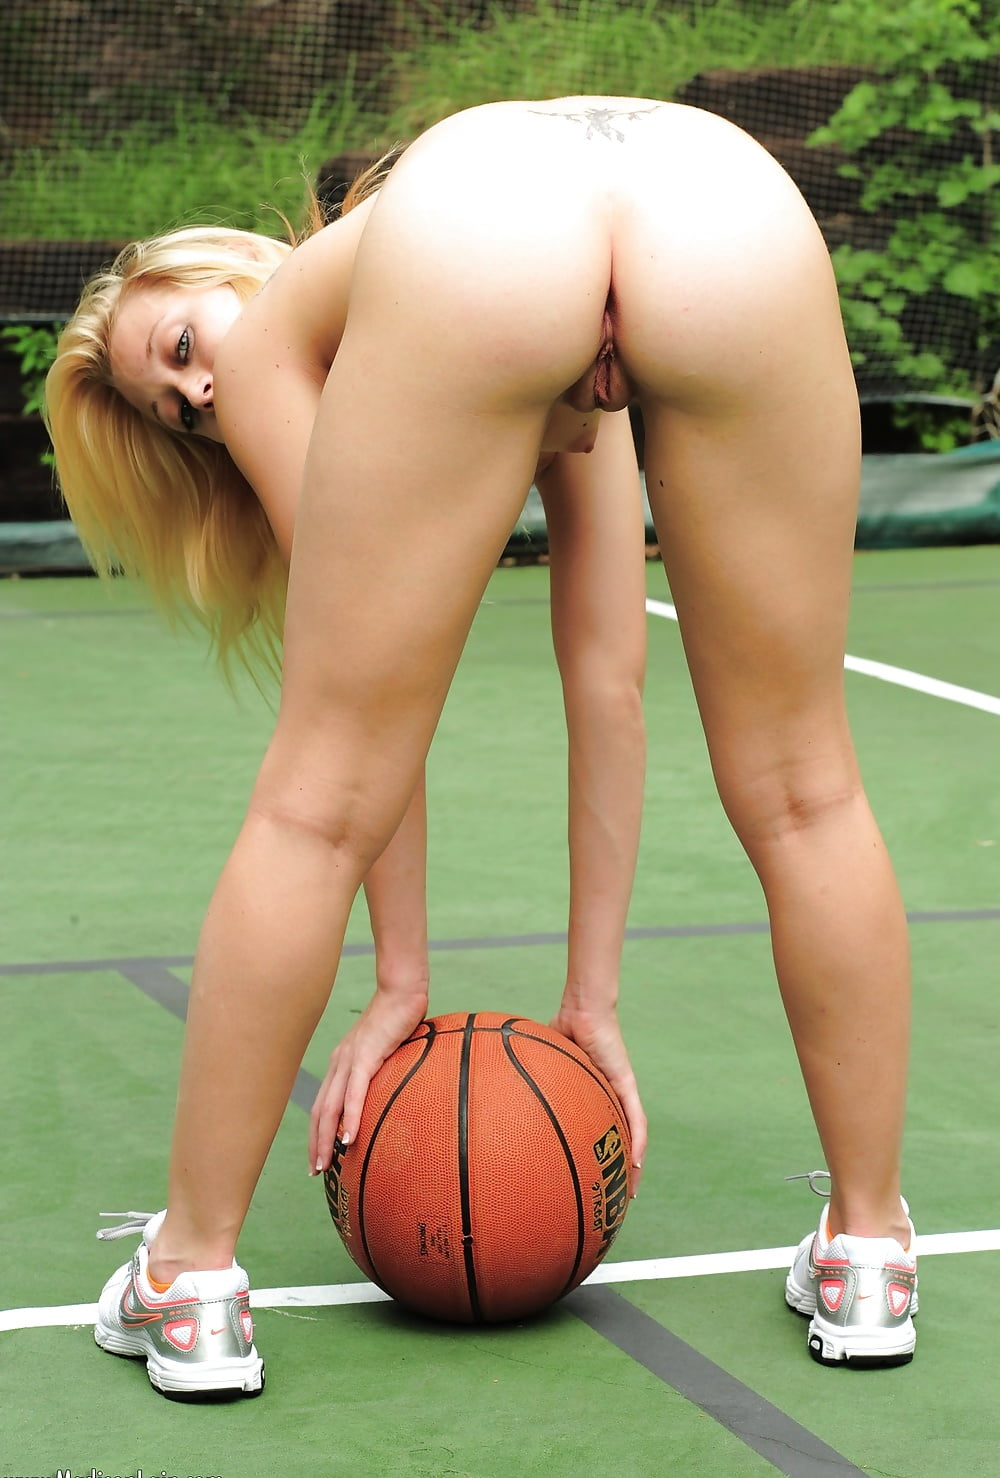 Nude Girl Sports Players